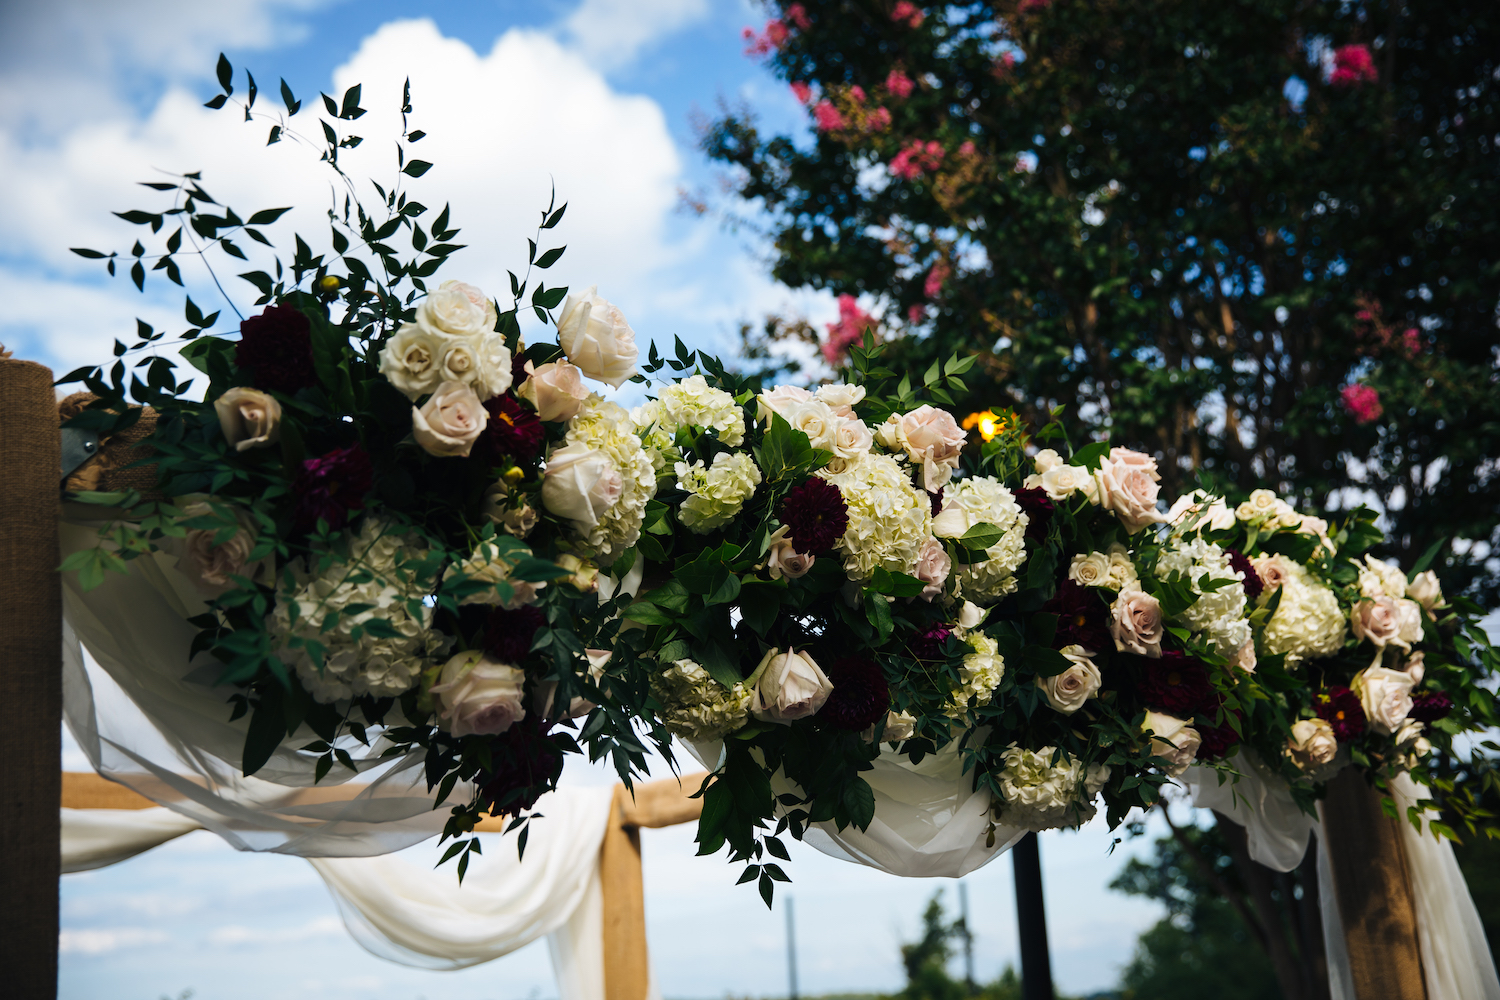 Rental Chuppah in wood, photography by Life Gallery Studio.